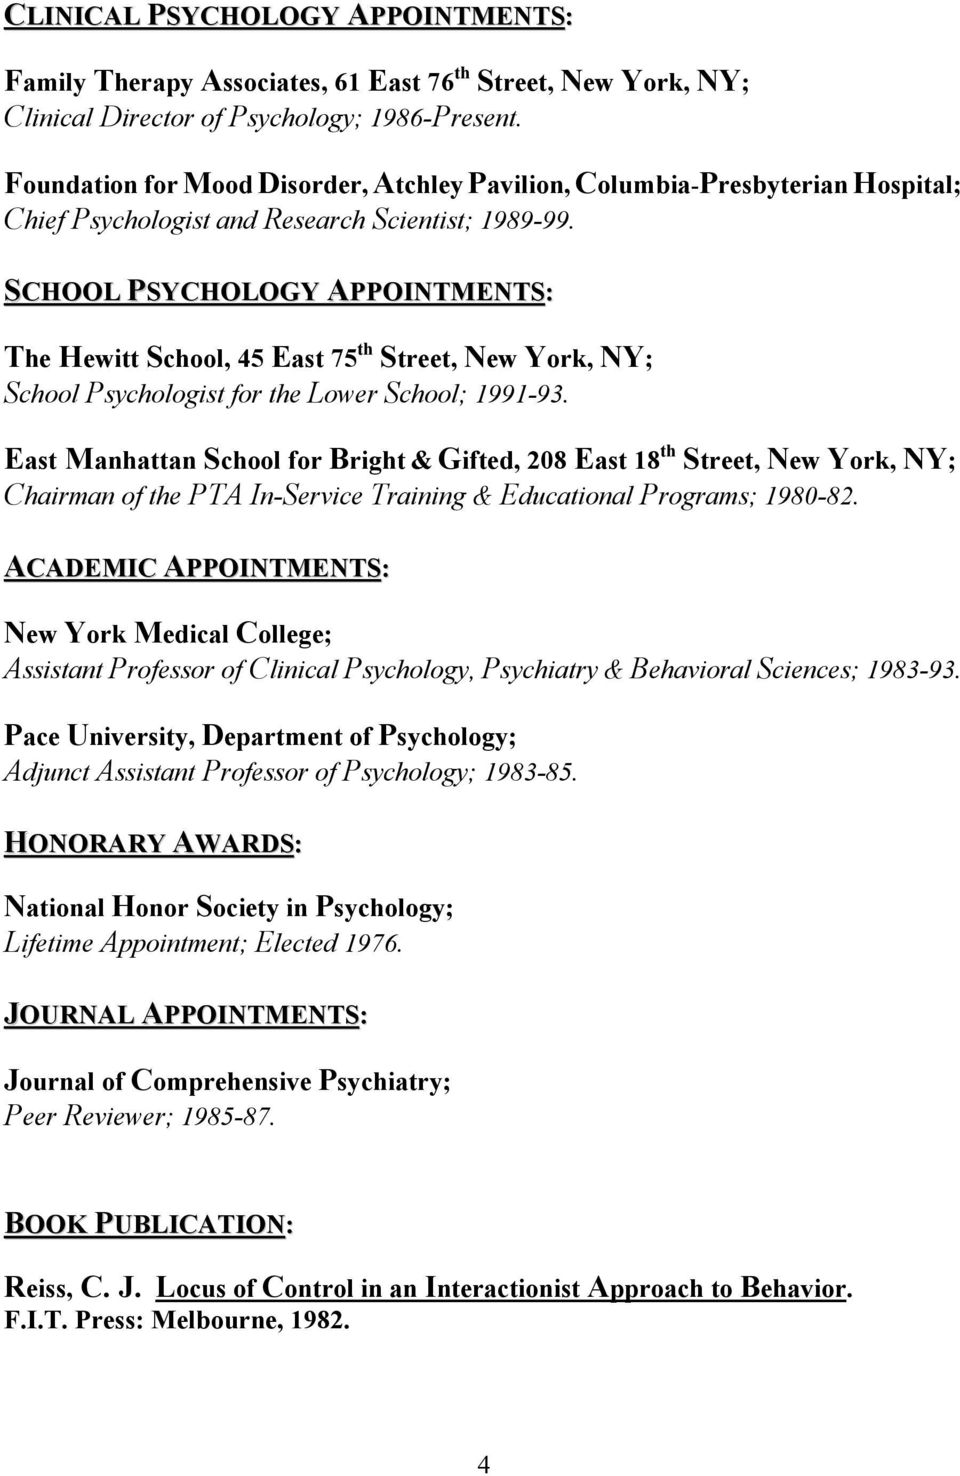 SCHOOL PSYCHOLOGY APPOINTMENTS: The Hewitt School, 45 East 75 th Street, New York, NY; School Psychologist for the Lower School; 1991-93.